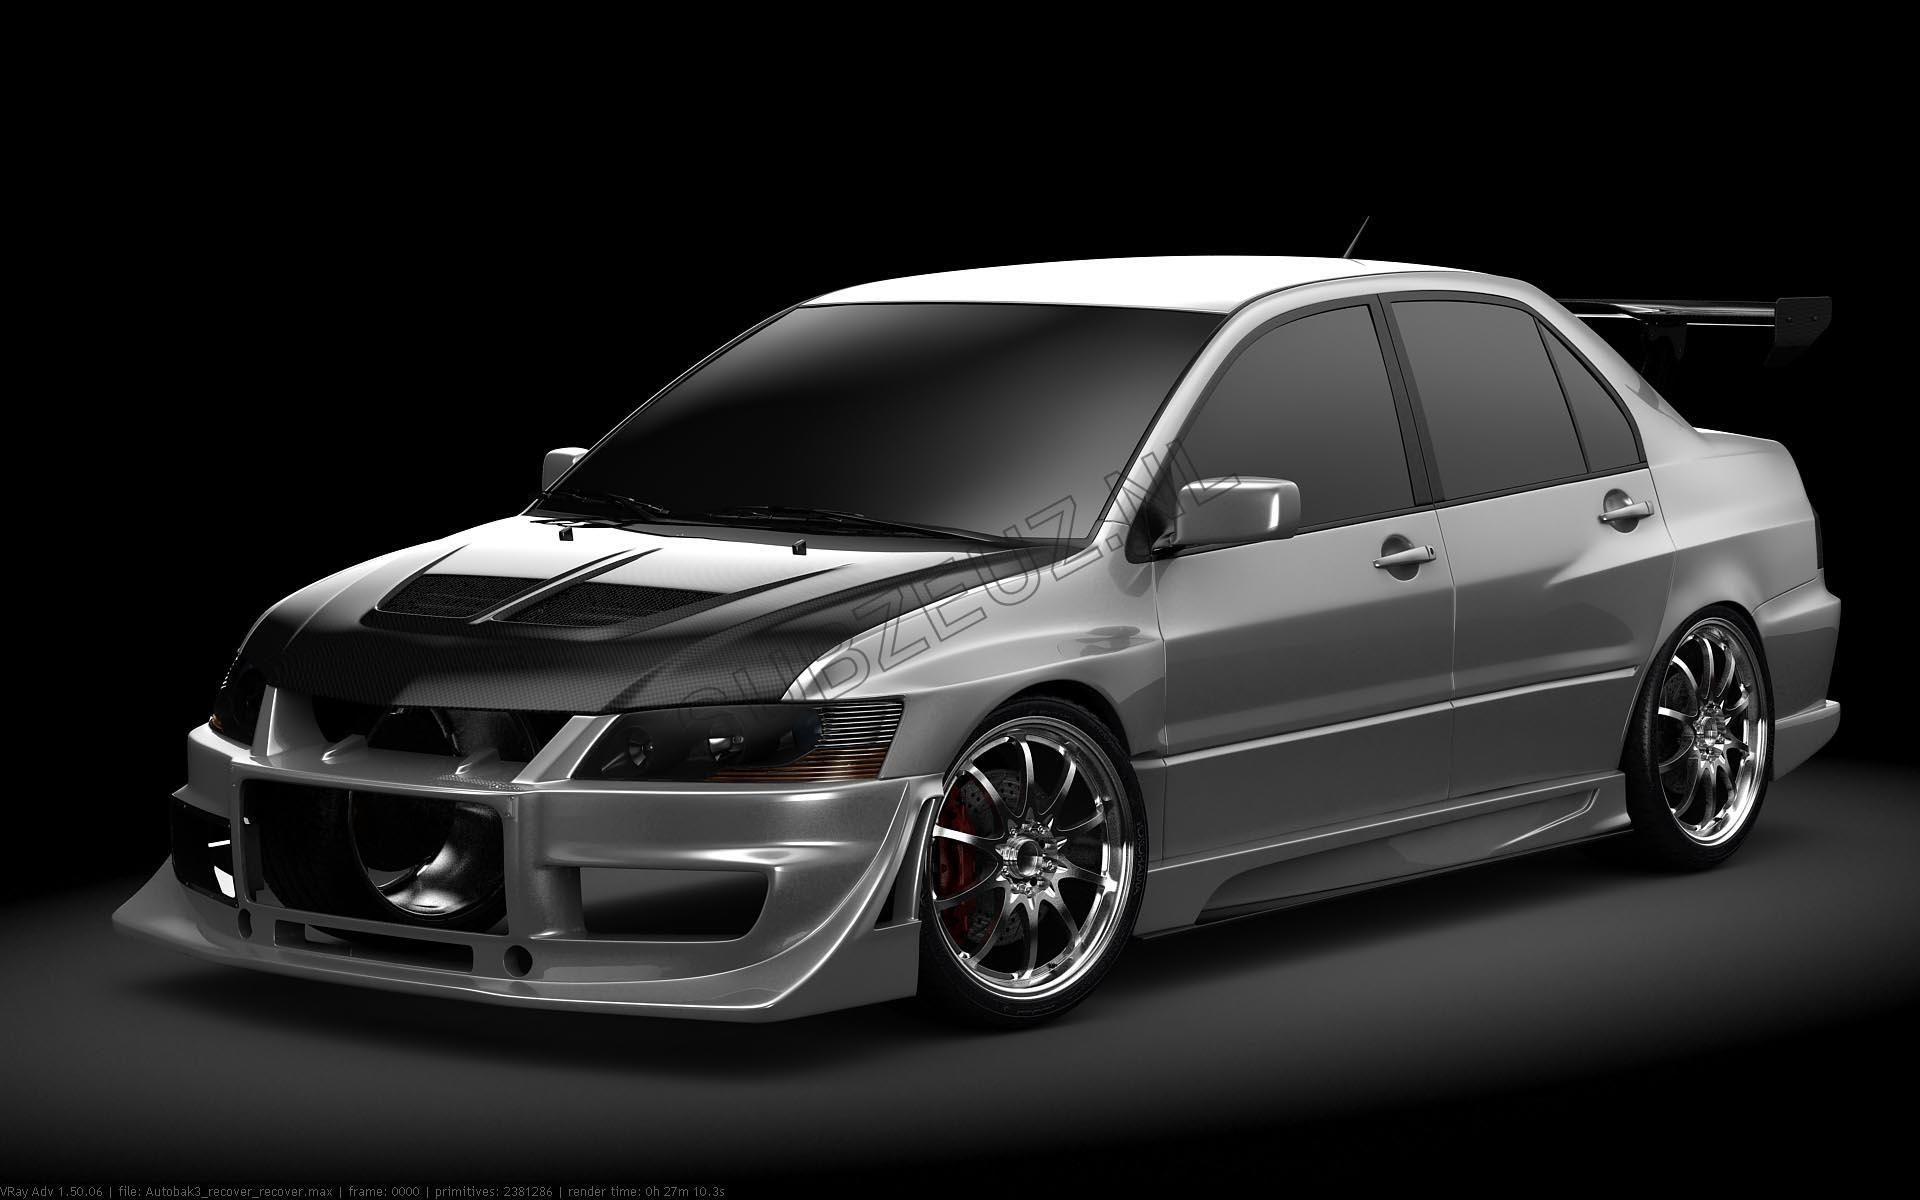 Mitsubishi Evo 8 Wallpaper - Viewing Gallery